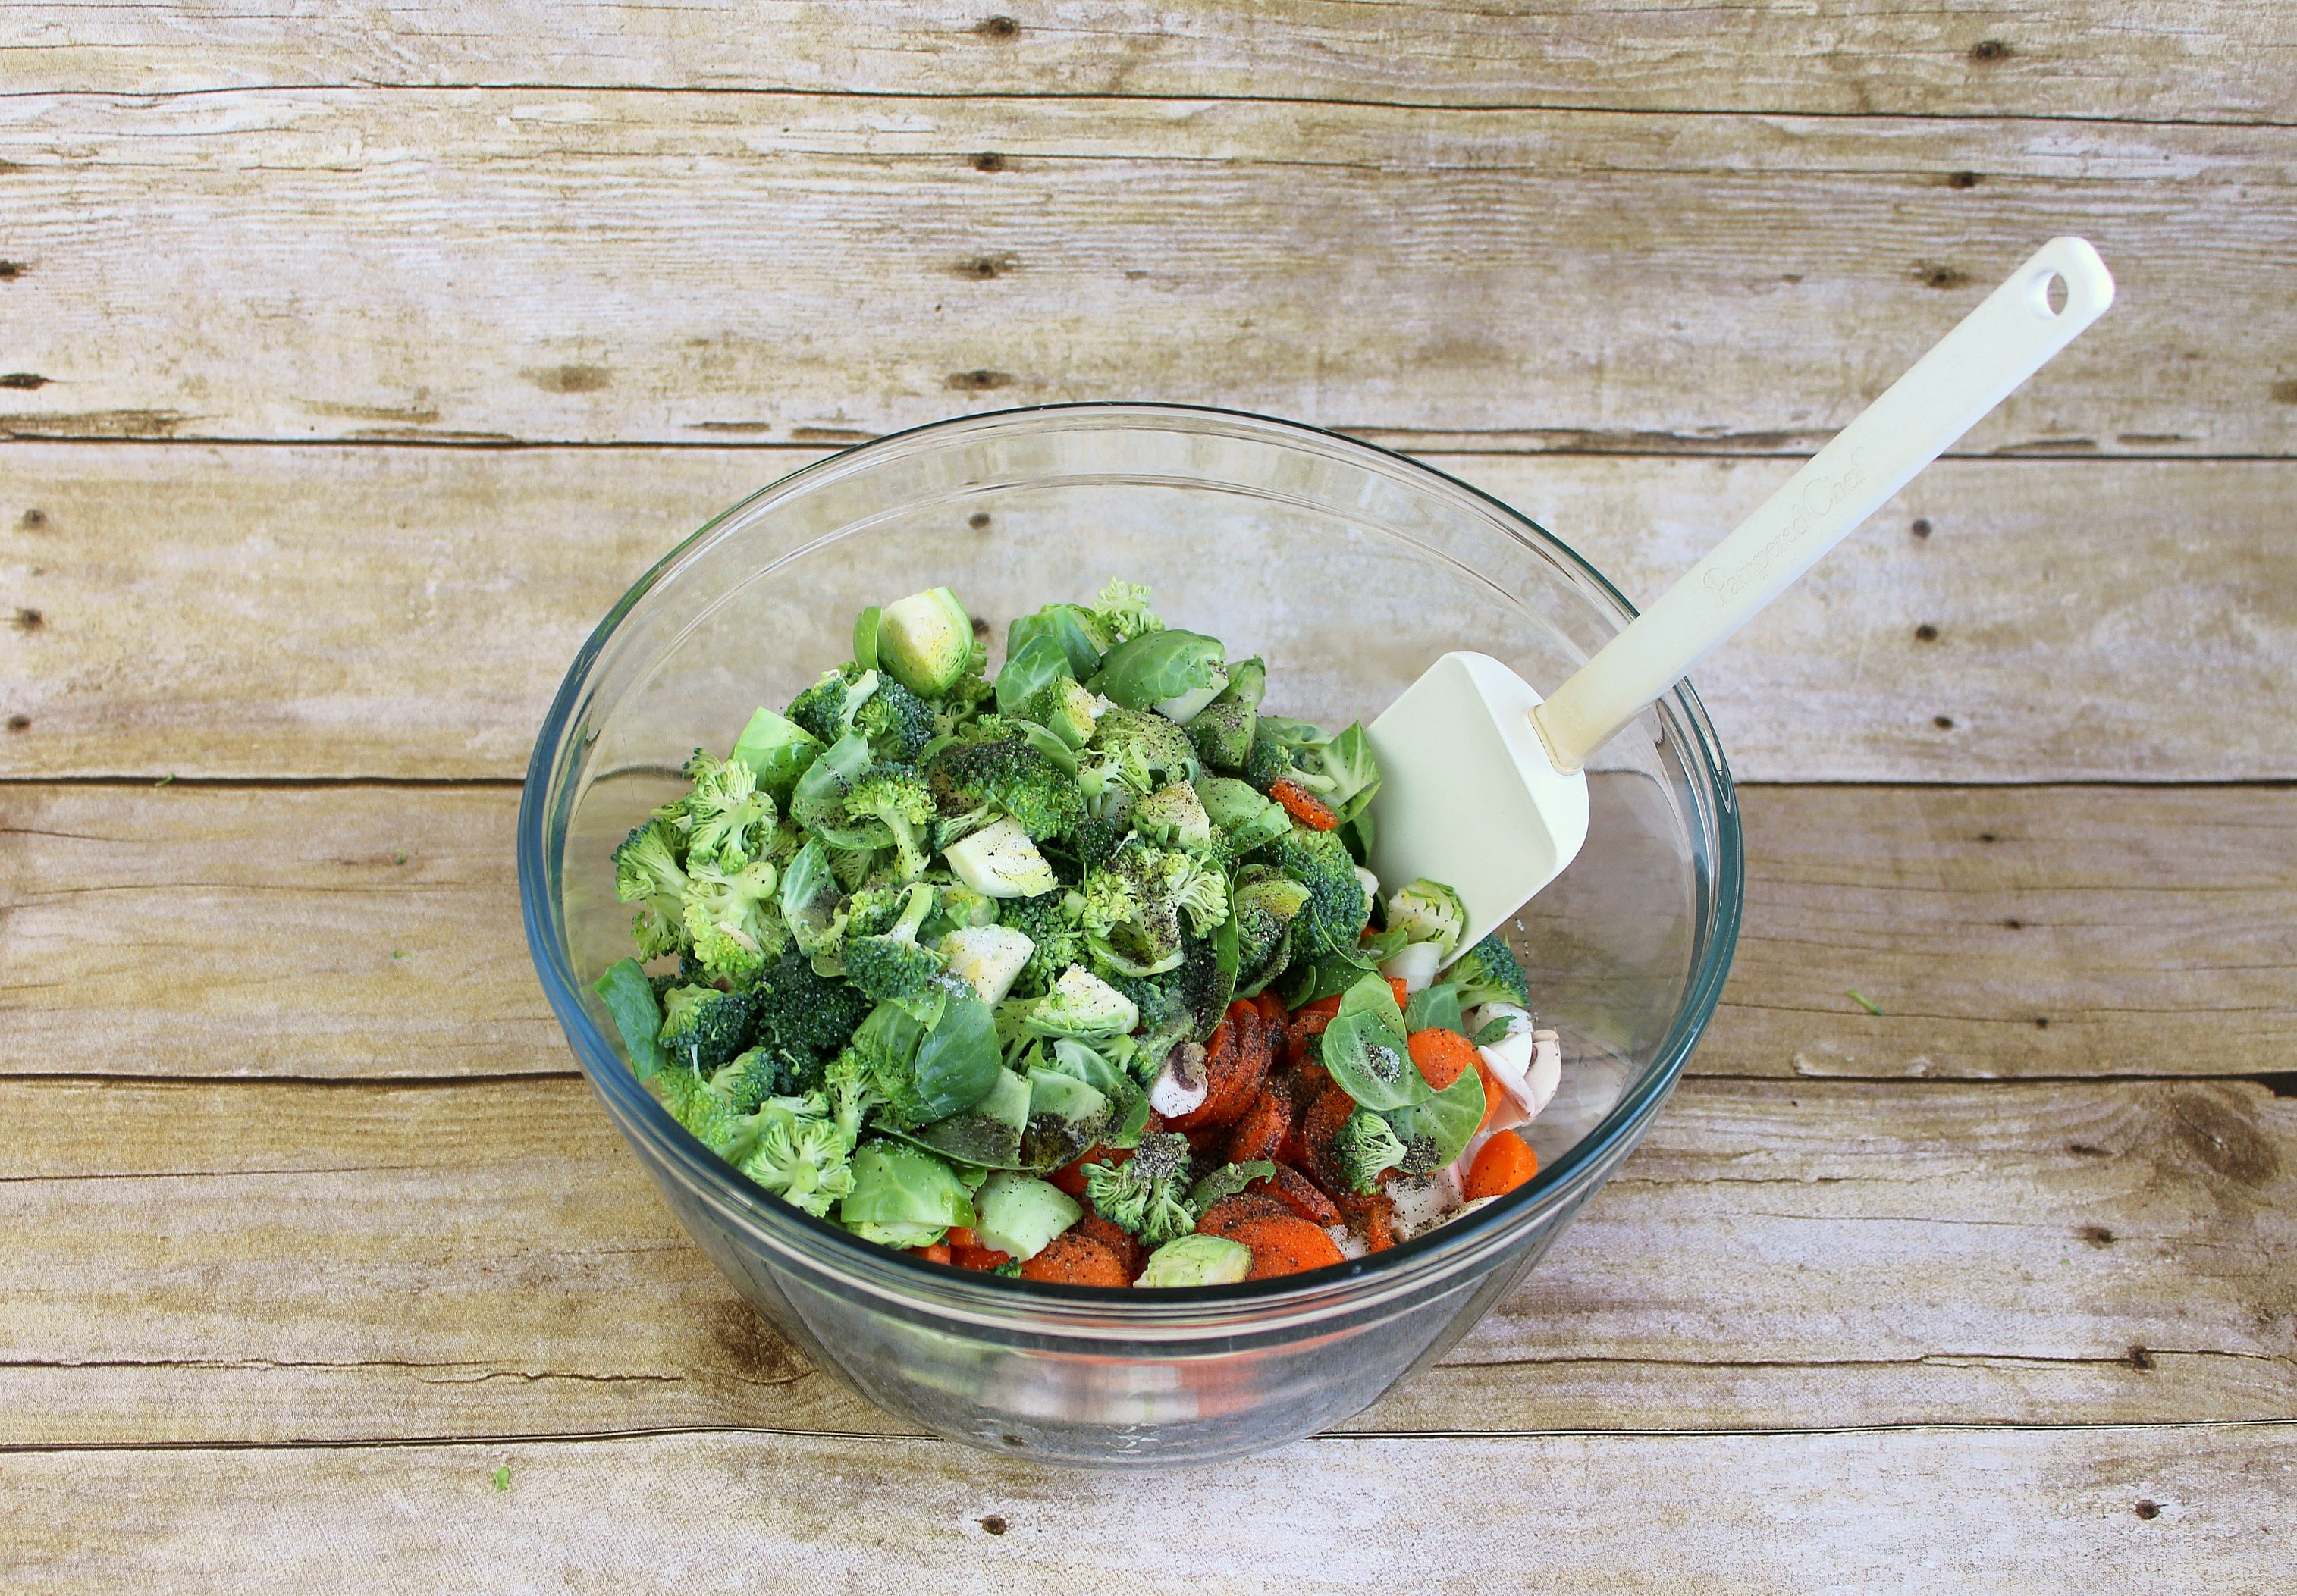 Mix chopped veggies with olive oil